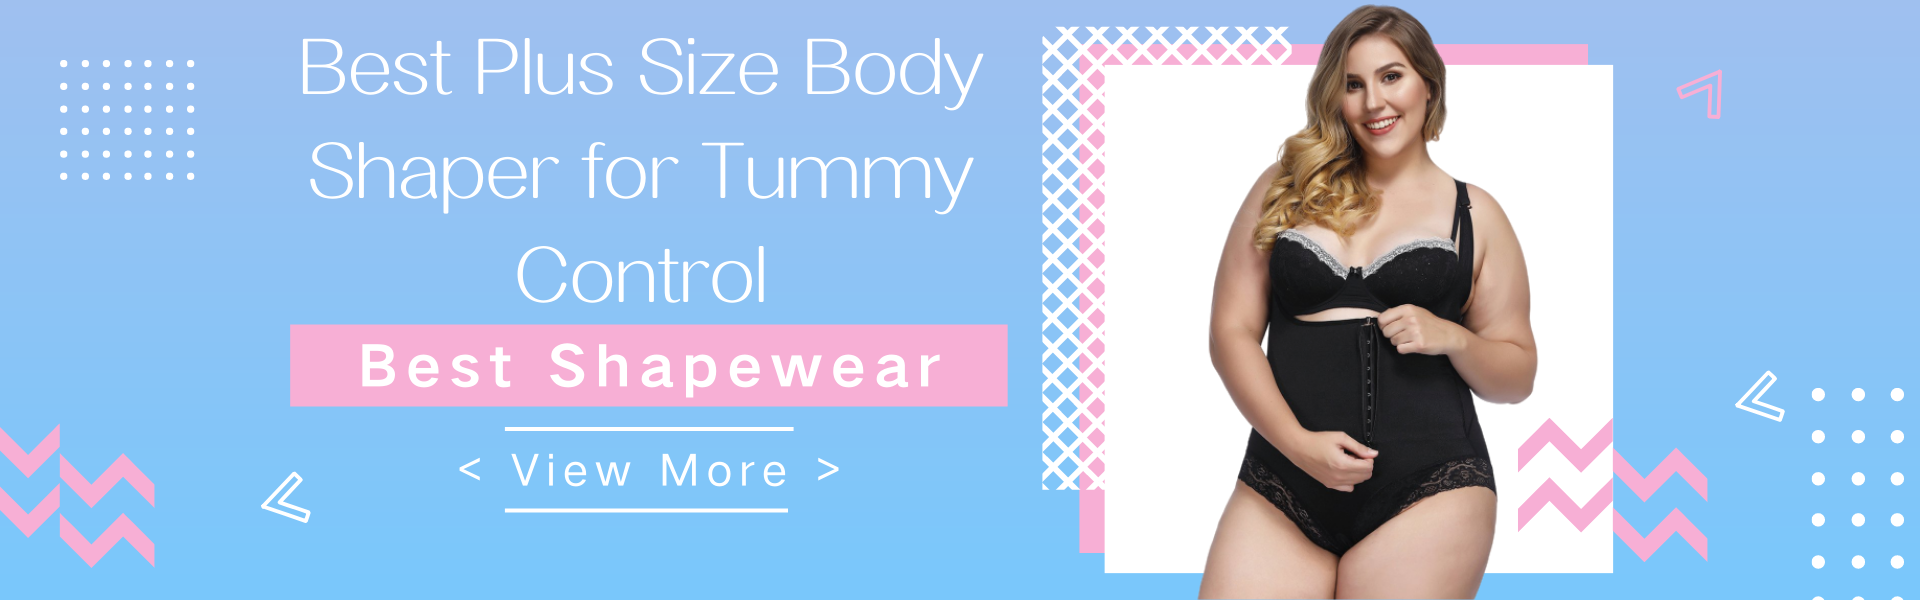 Best Plus Size Body Shaper for Tummy Control